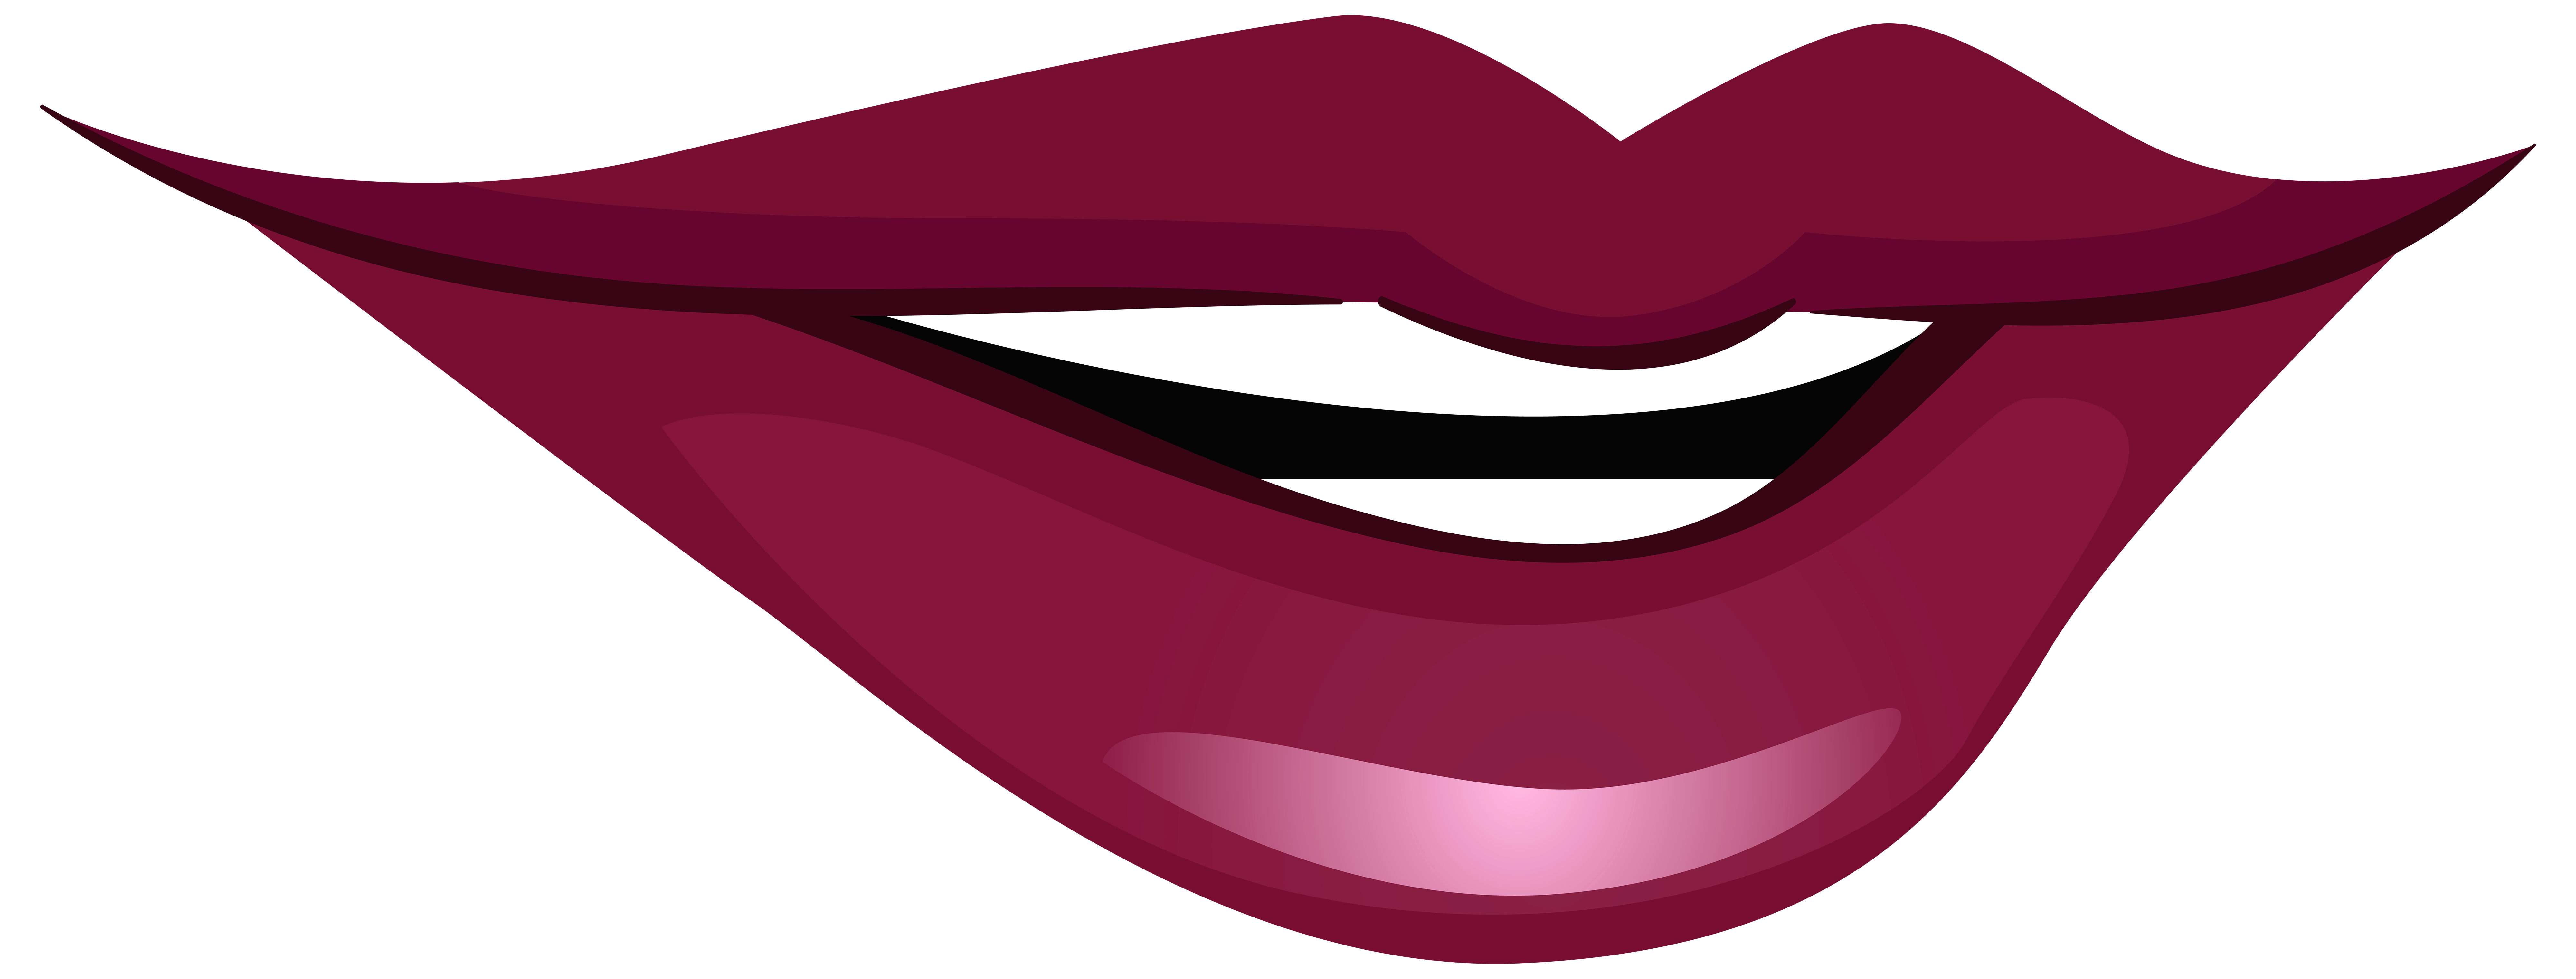 8000x3039 Smiling Mouth Png Clip Art